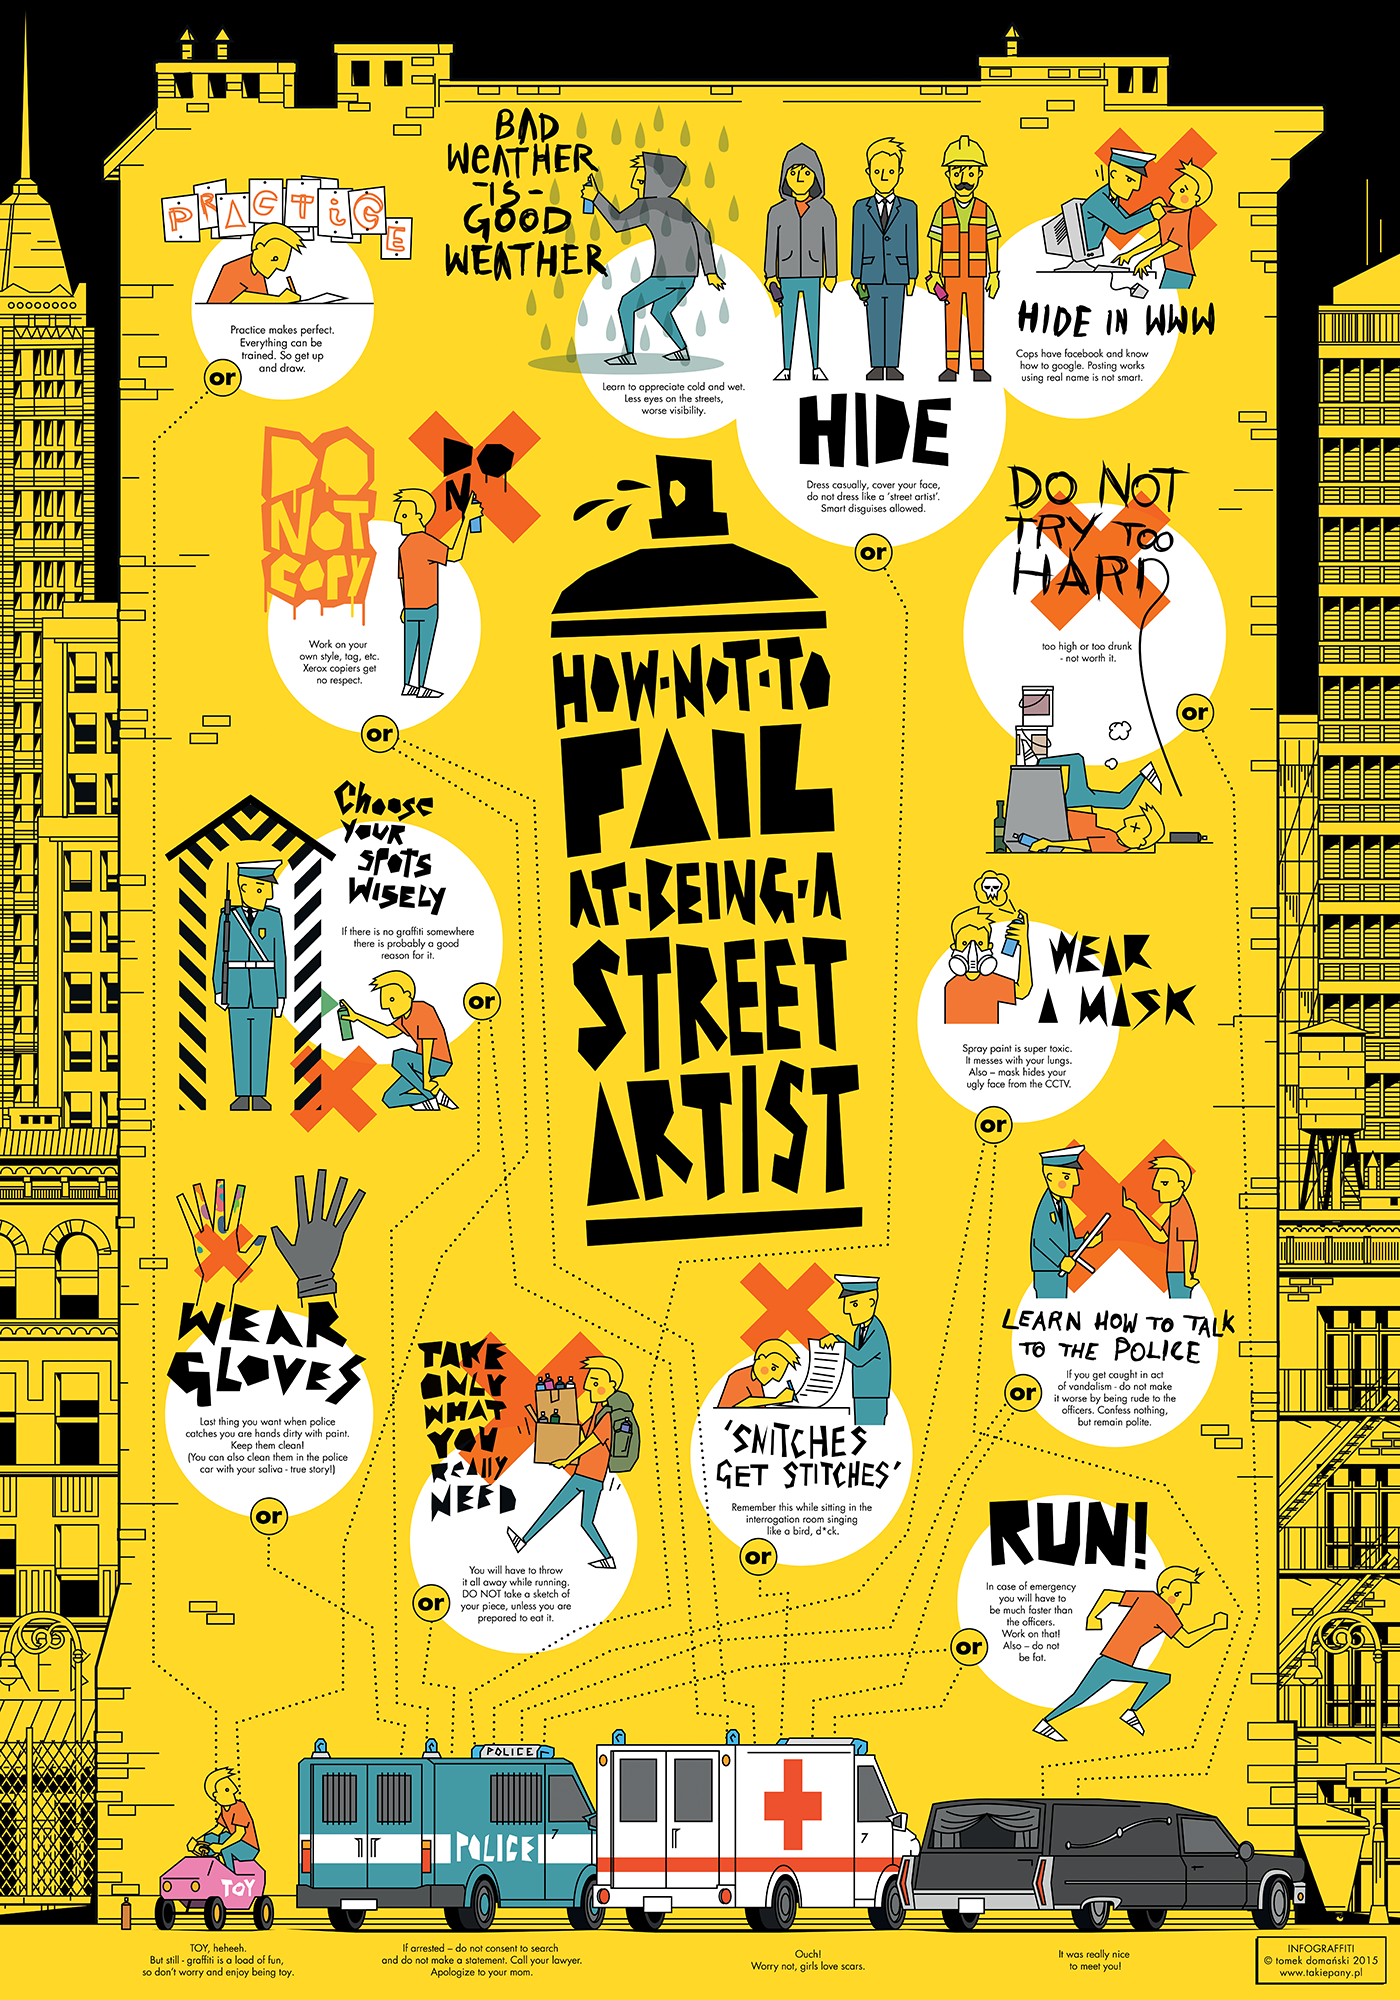 'How Not To Fail At Being A Street